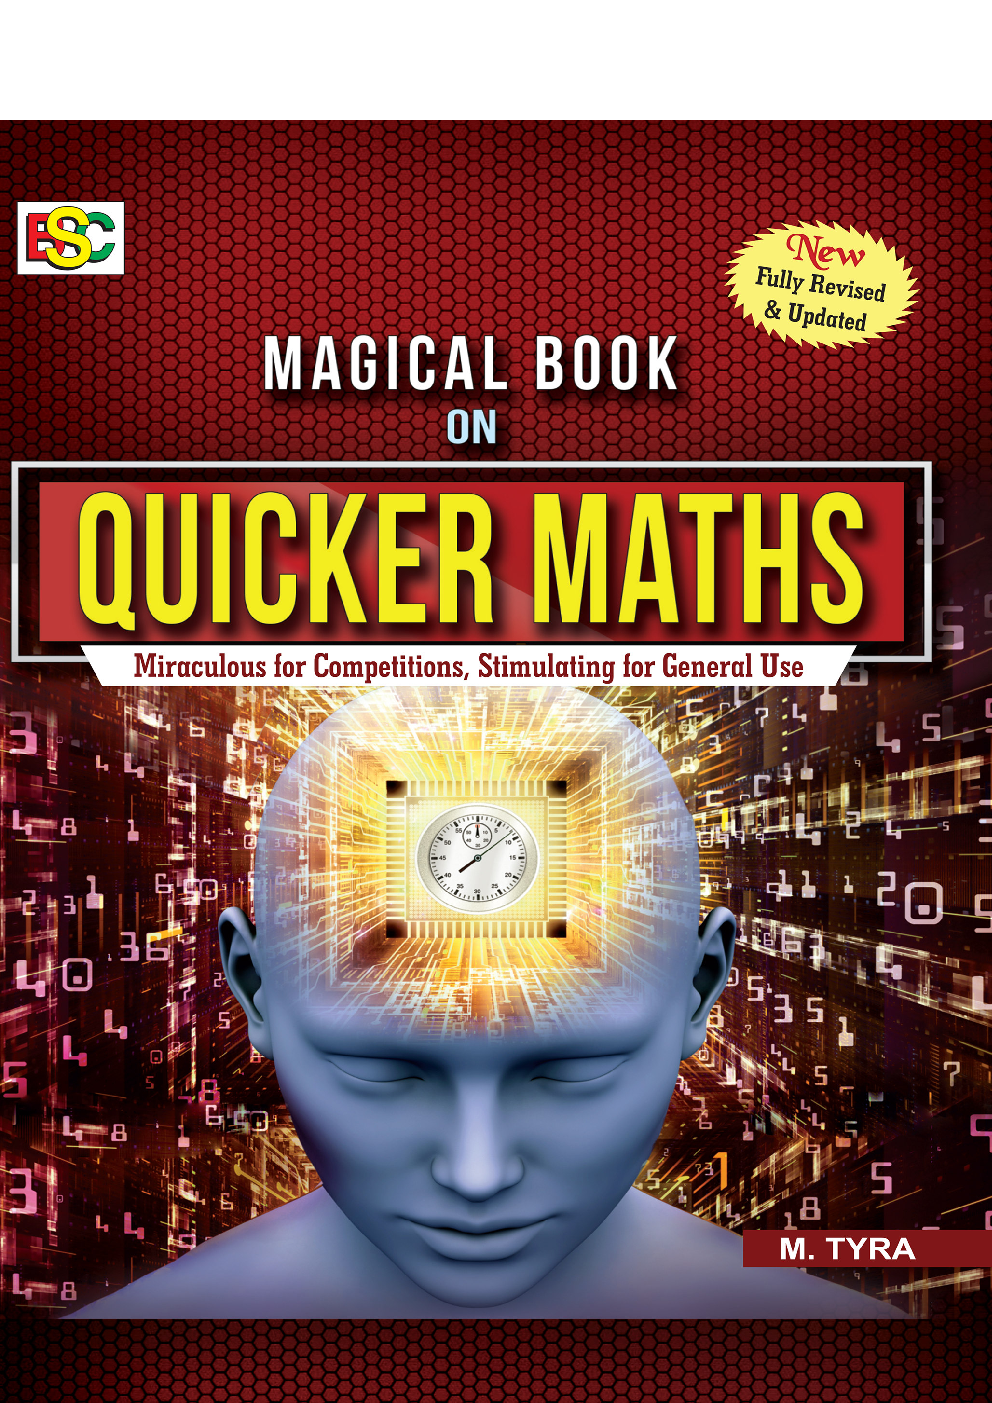 Magical Book Series: Quicker Maths - Page 1